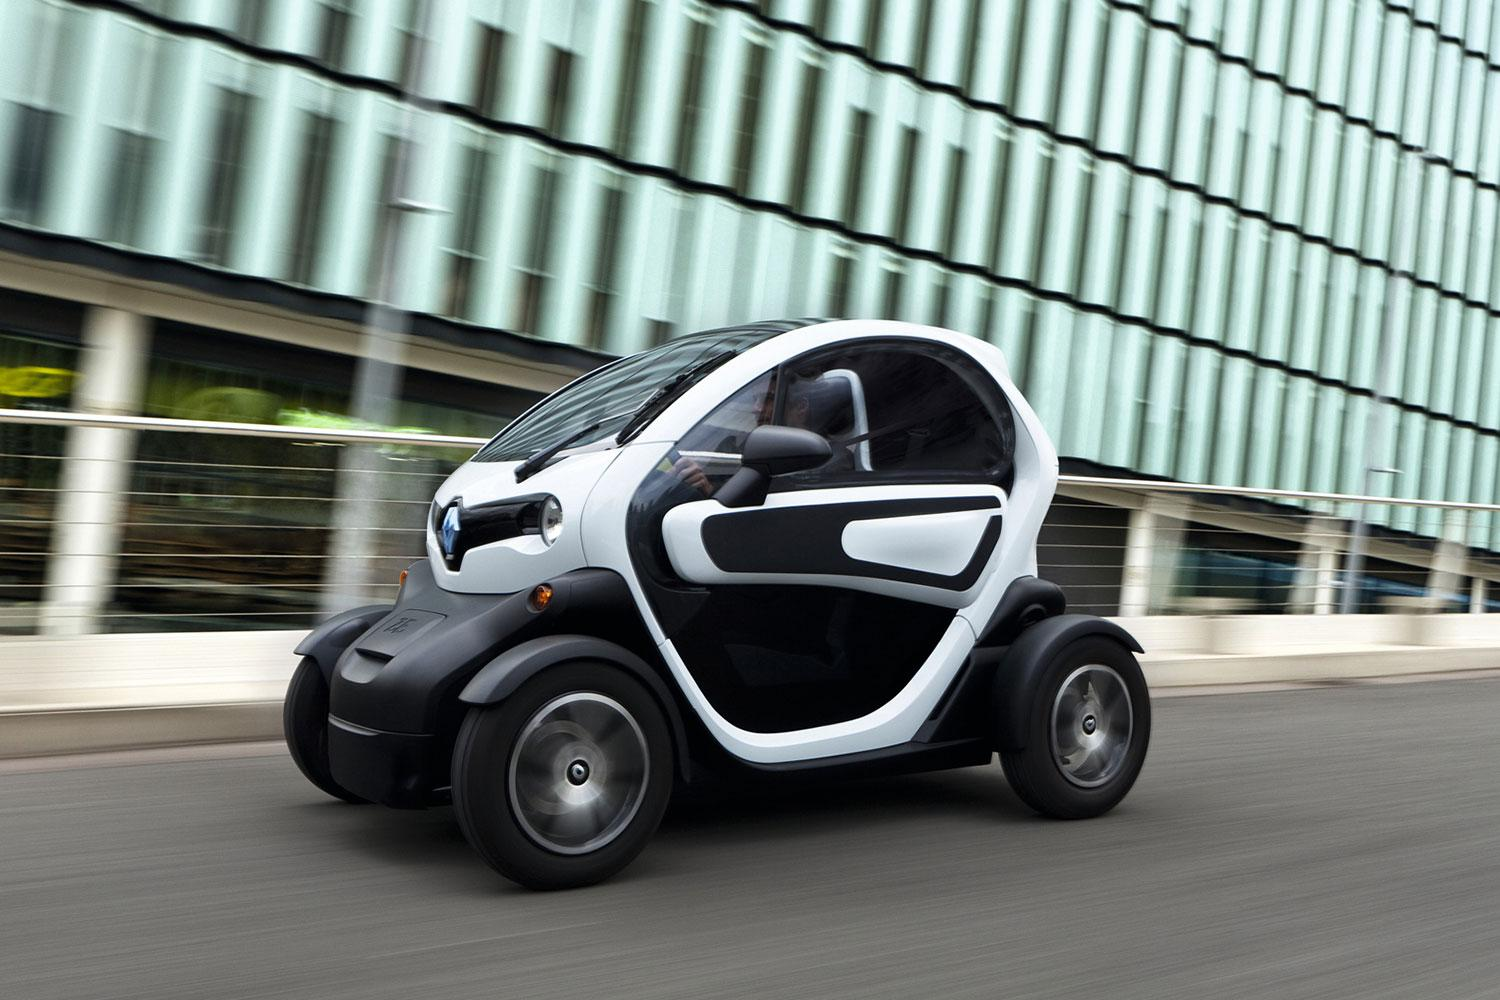 french revolution renault s twizy and kangoo inch closer to canadian shores. Black Bedroom Furniture Sets. Home Design Ideas